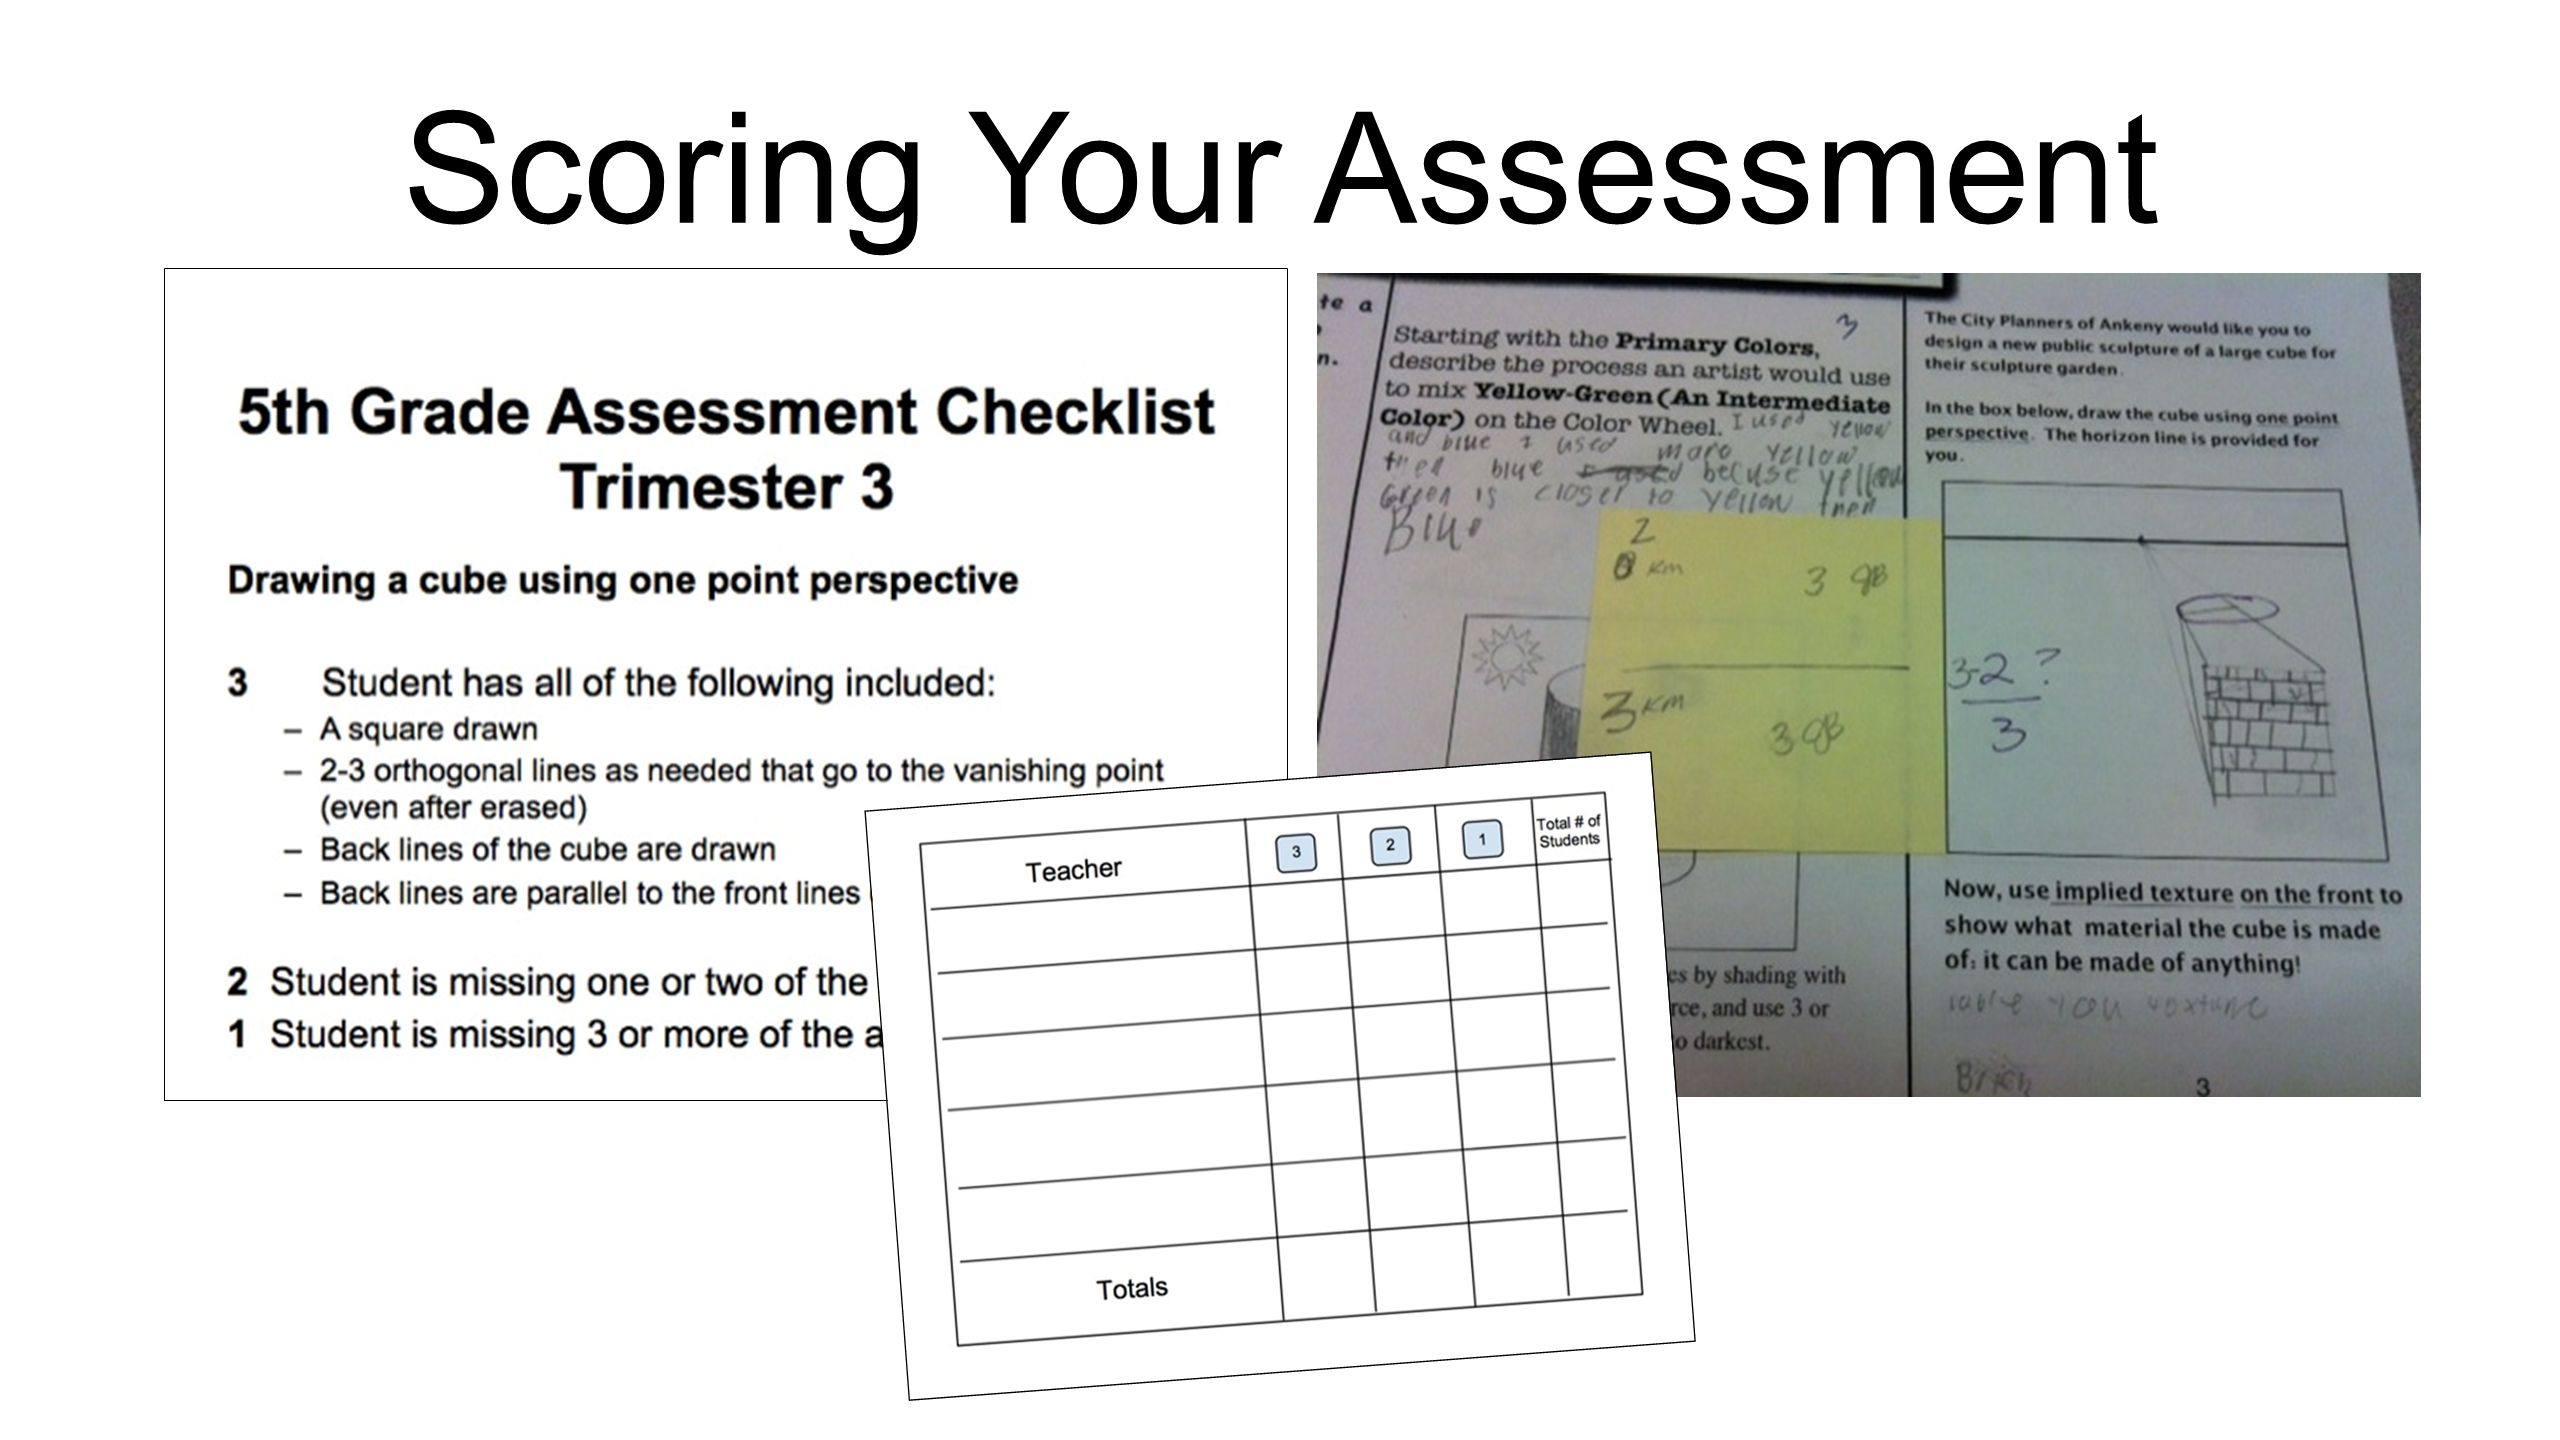 Scoring Your Assessment